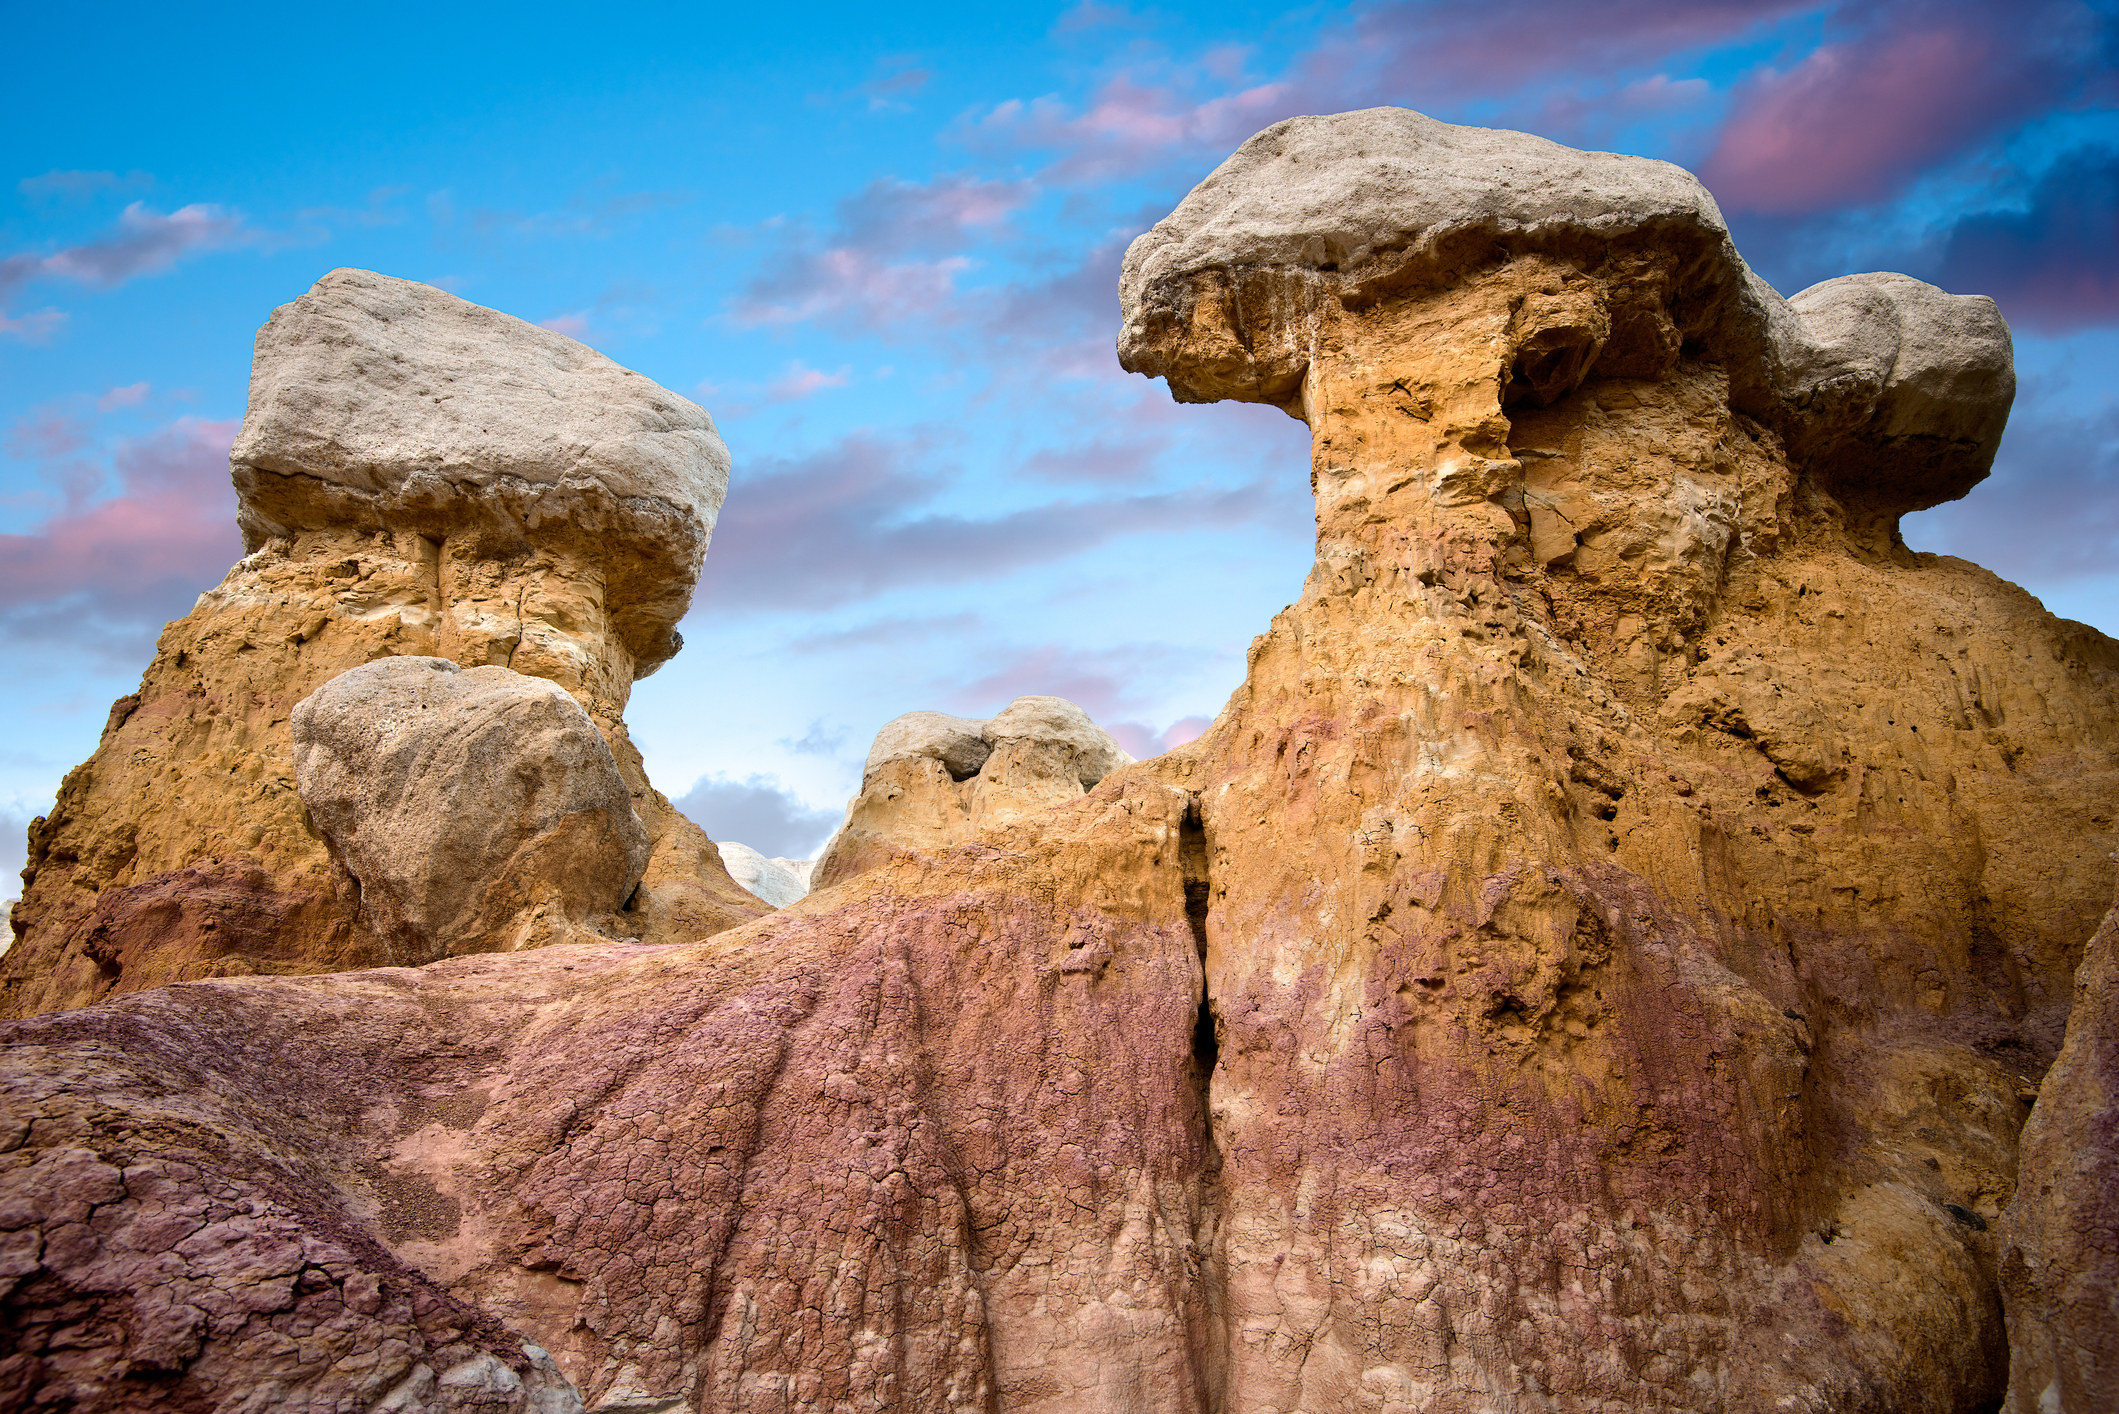 Two sharp rock faces with a purple tinge sit below a twilight sky